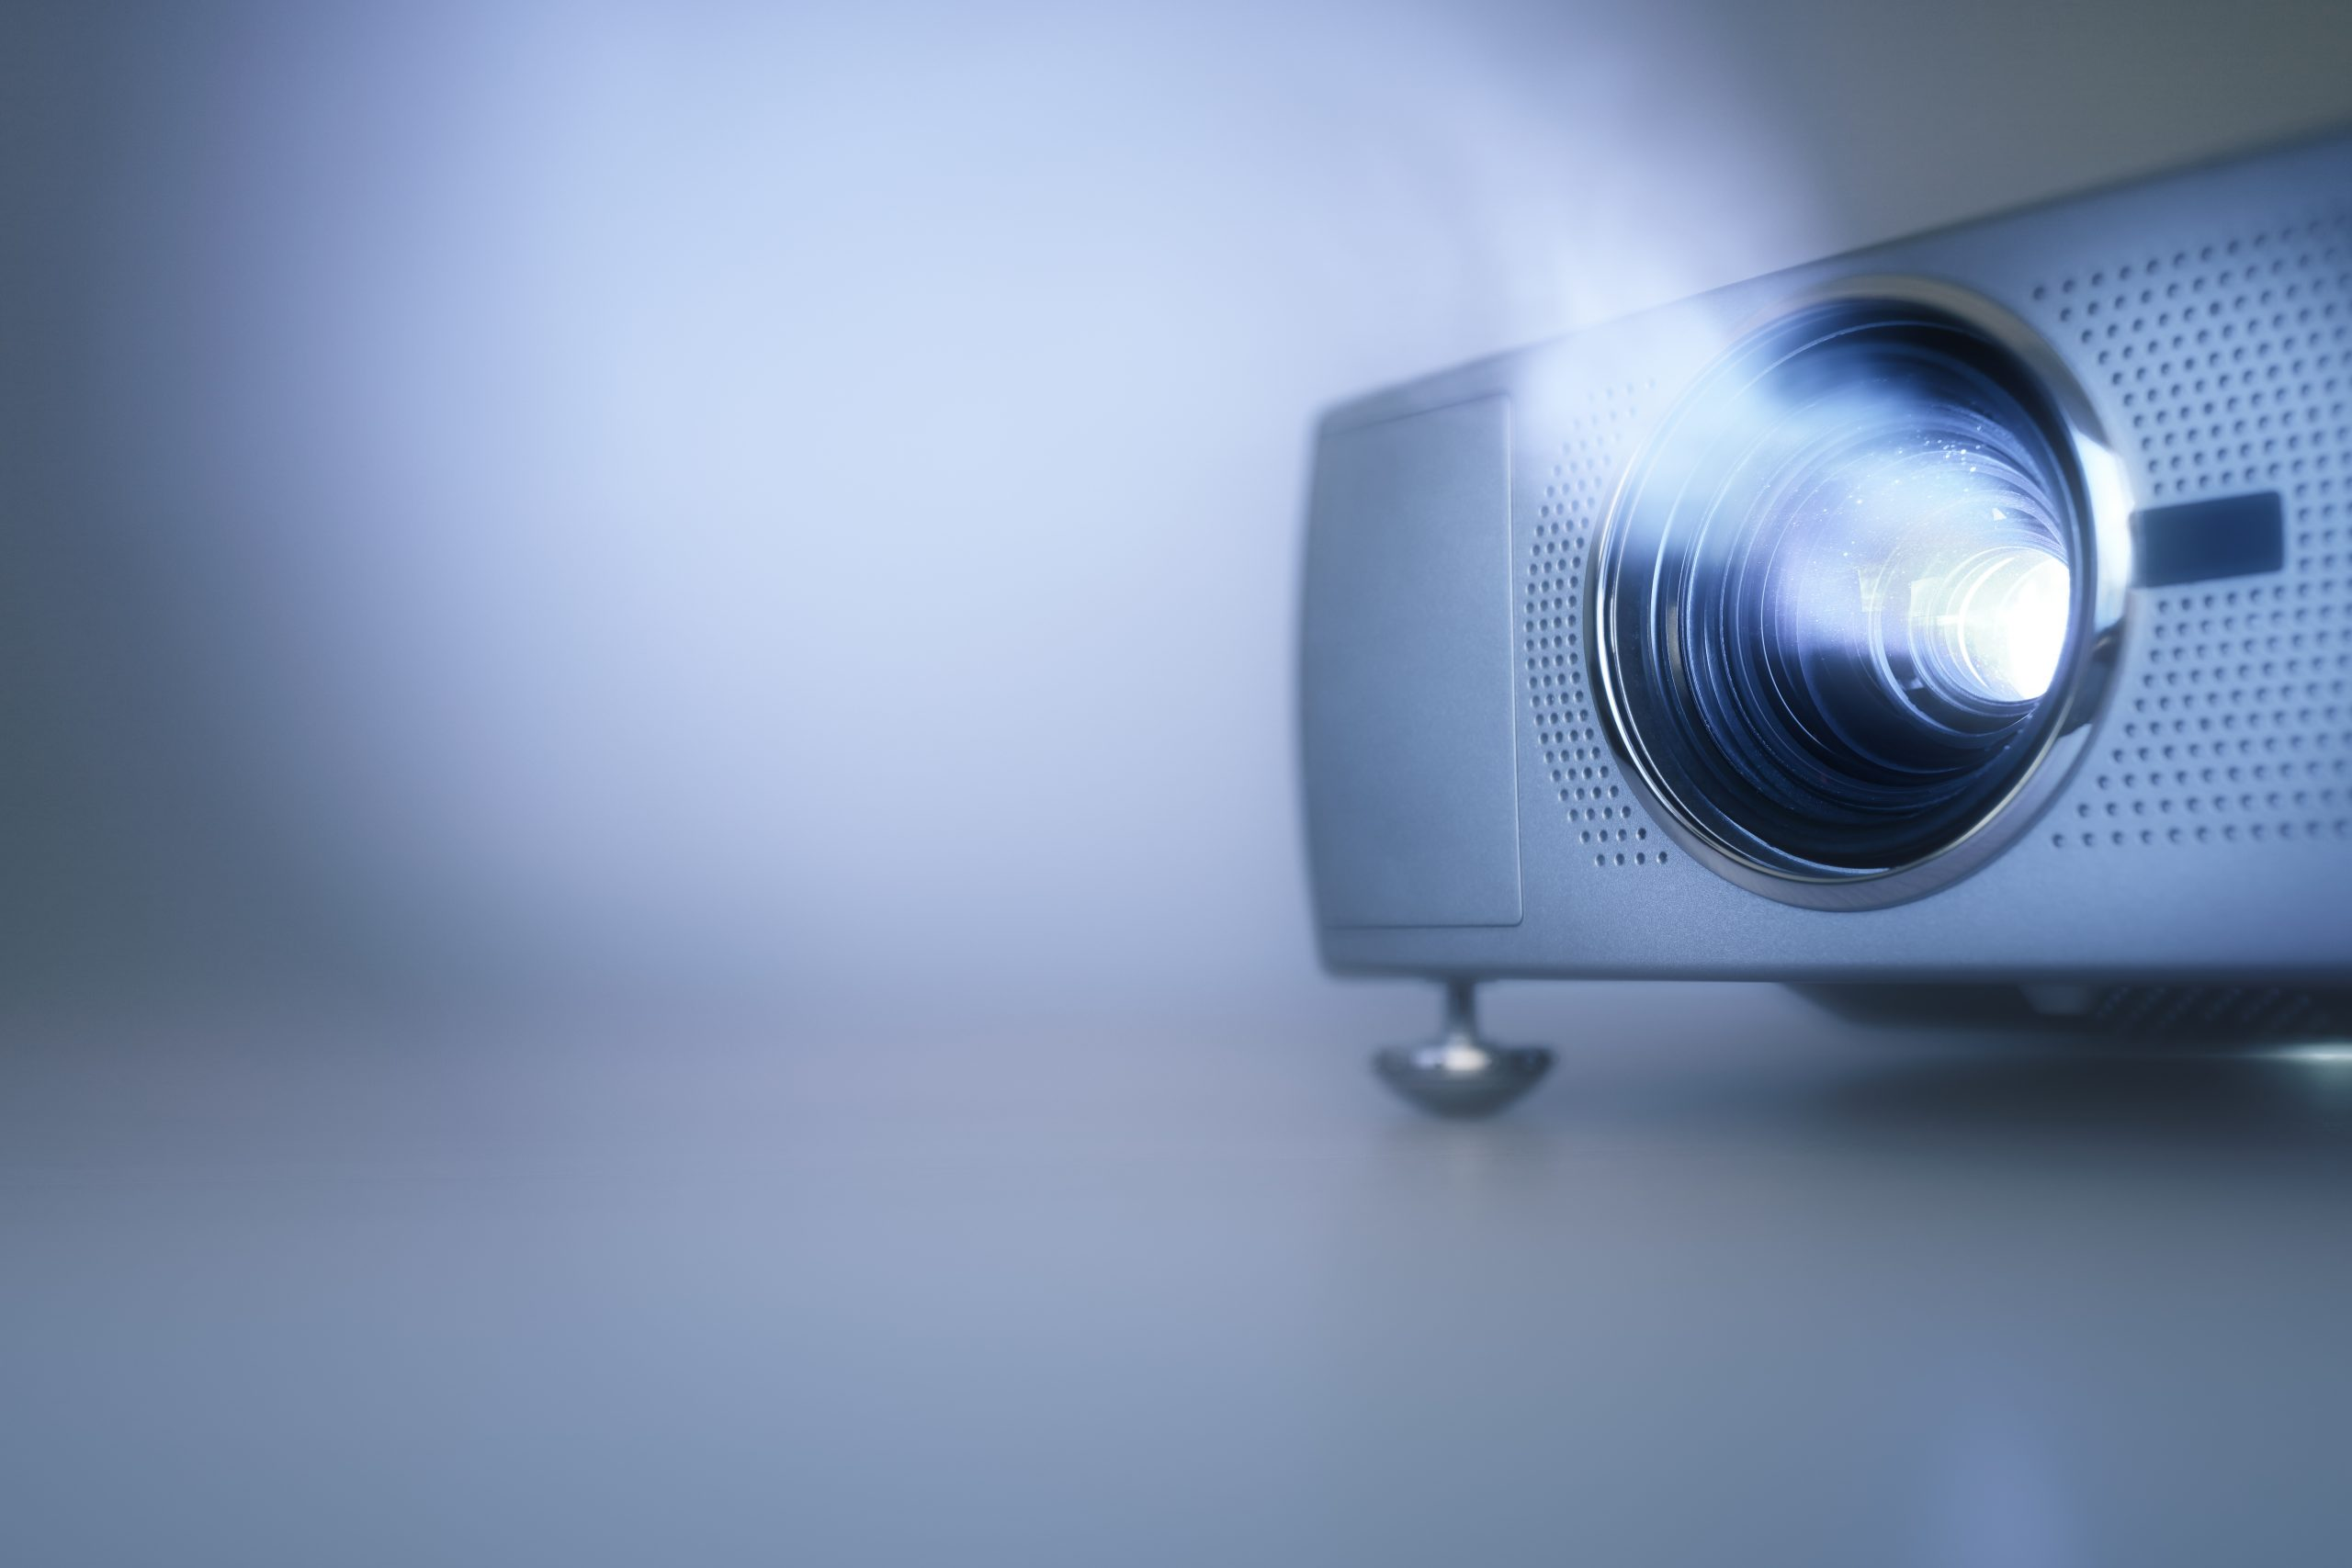 Best 4K Projector 2020: Shopping Guide & Review